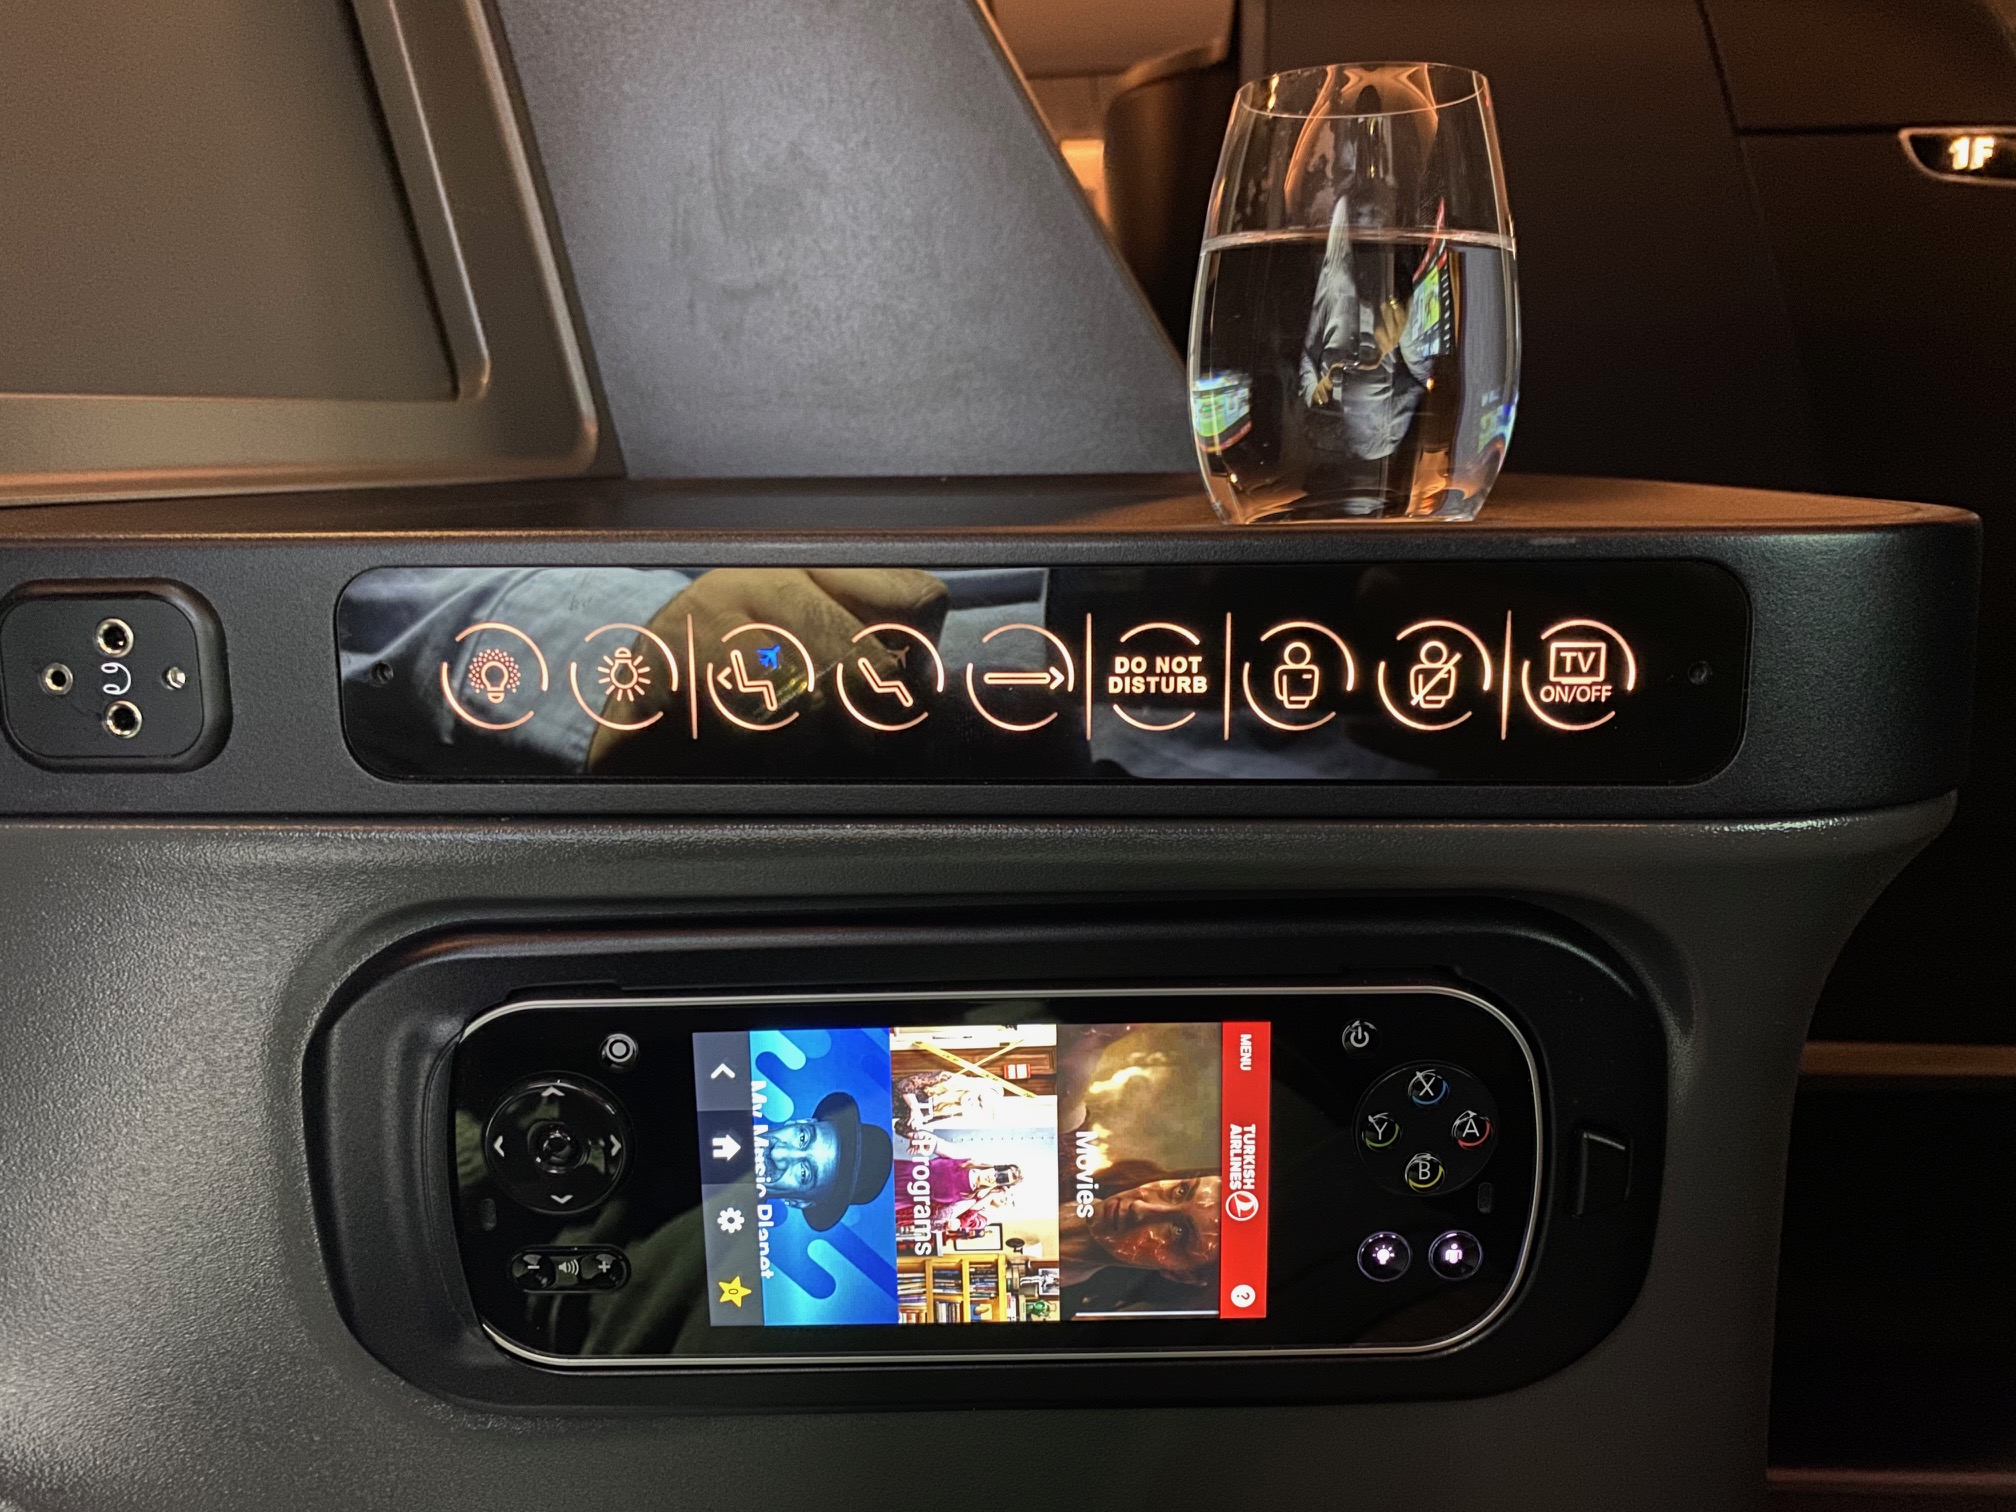 Turkish Airlines 787-9 Business Class Seat Controls